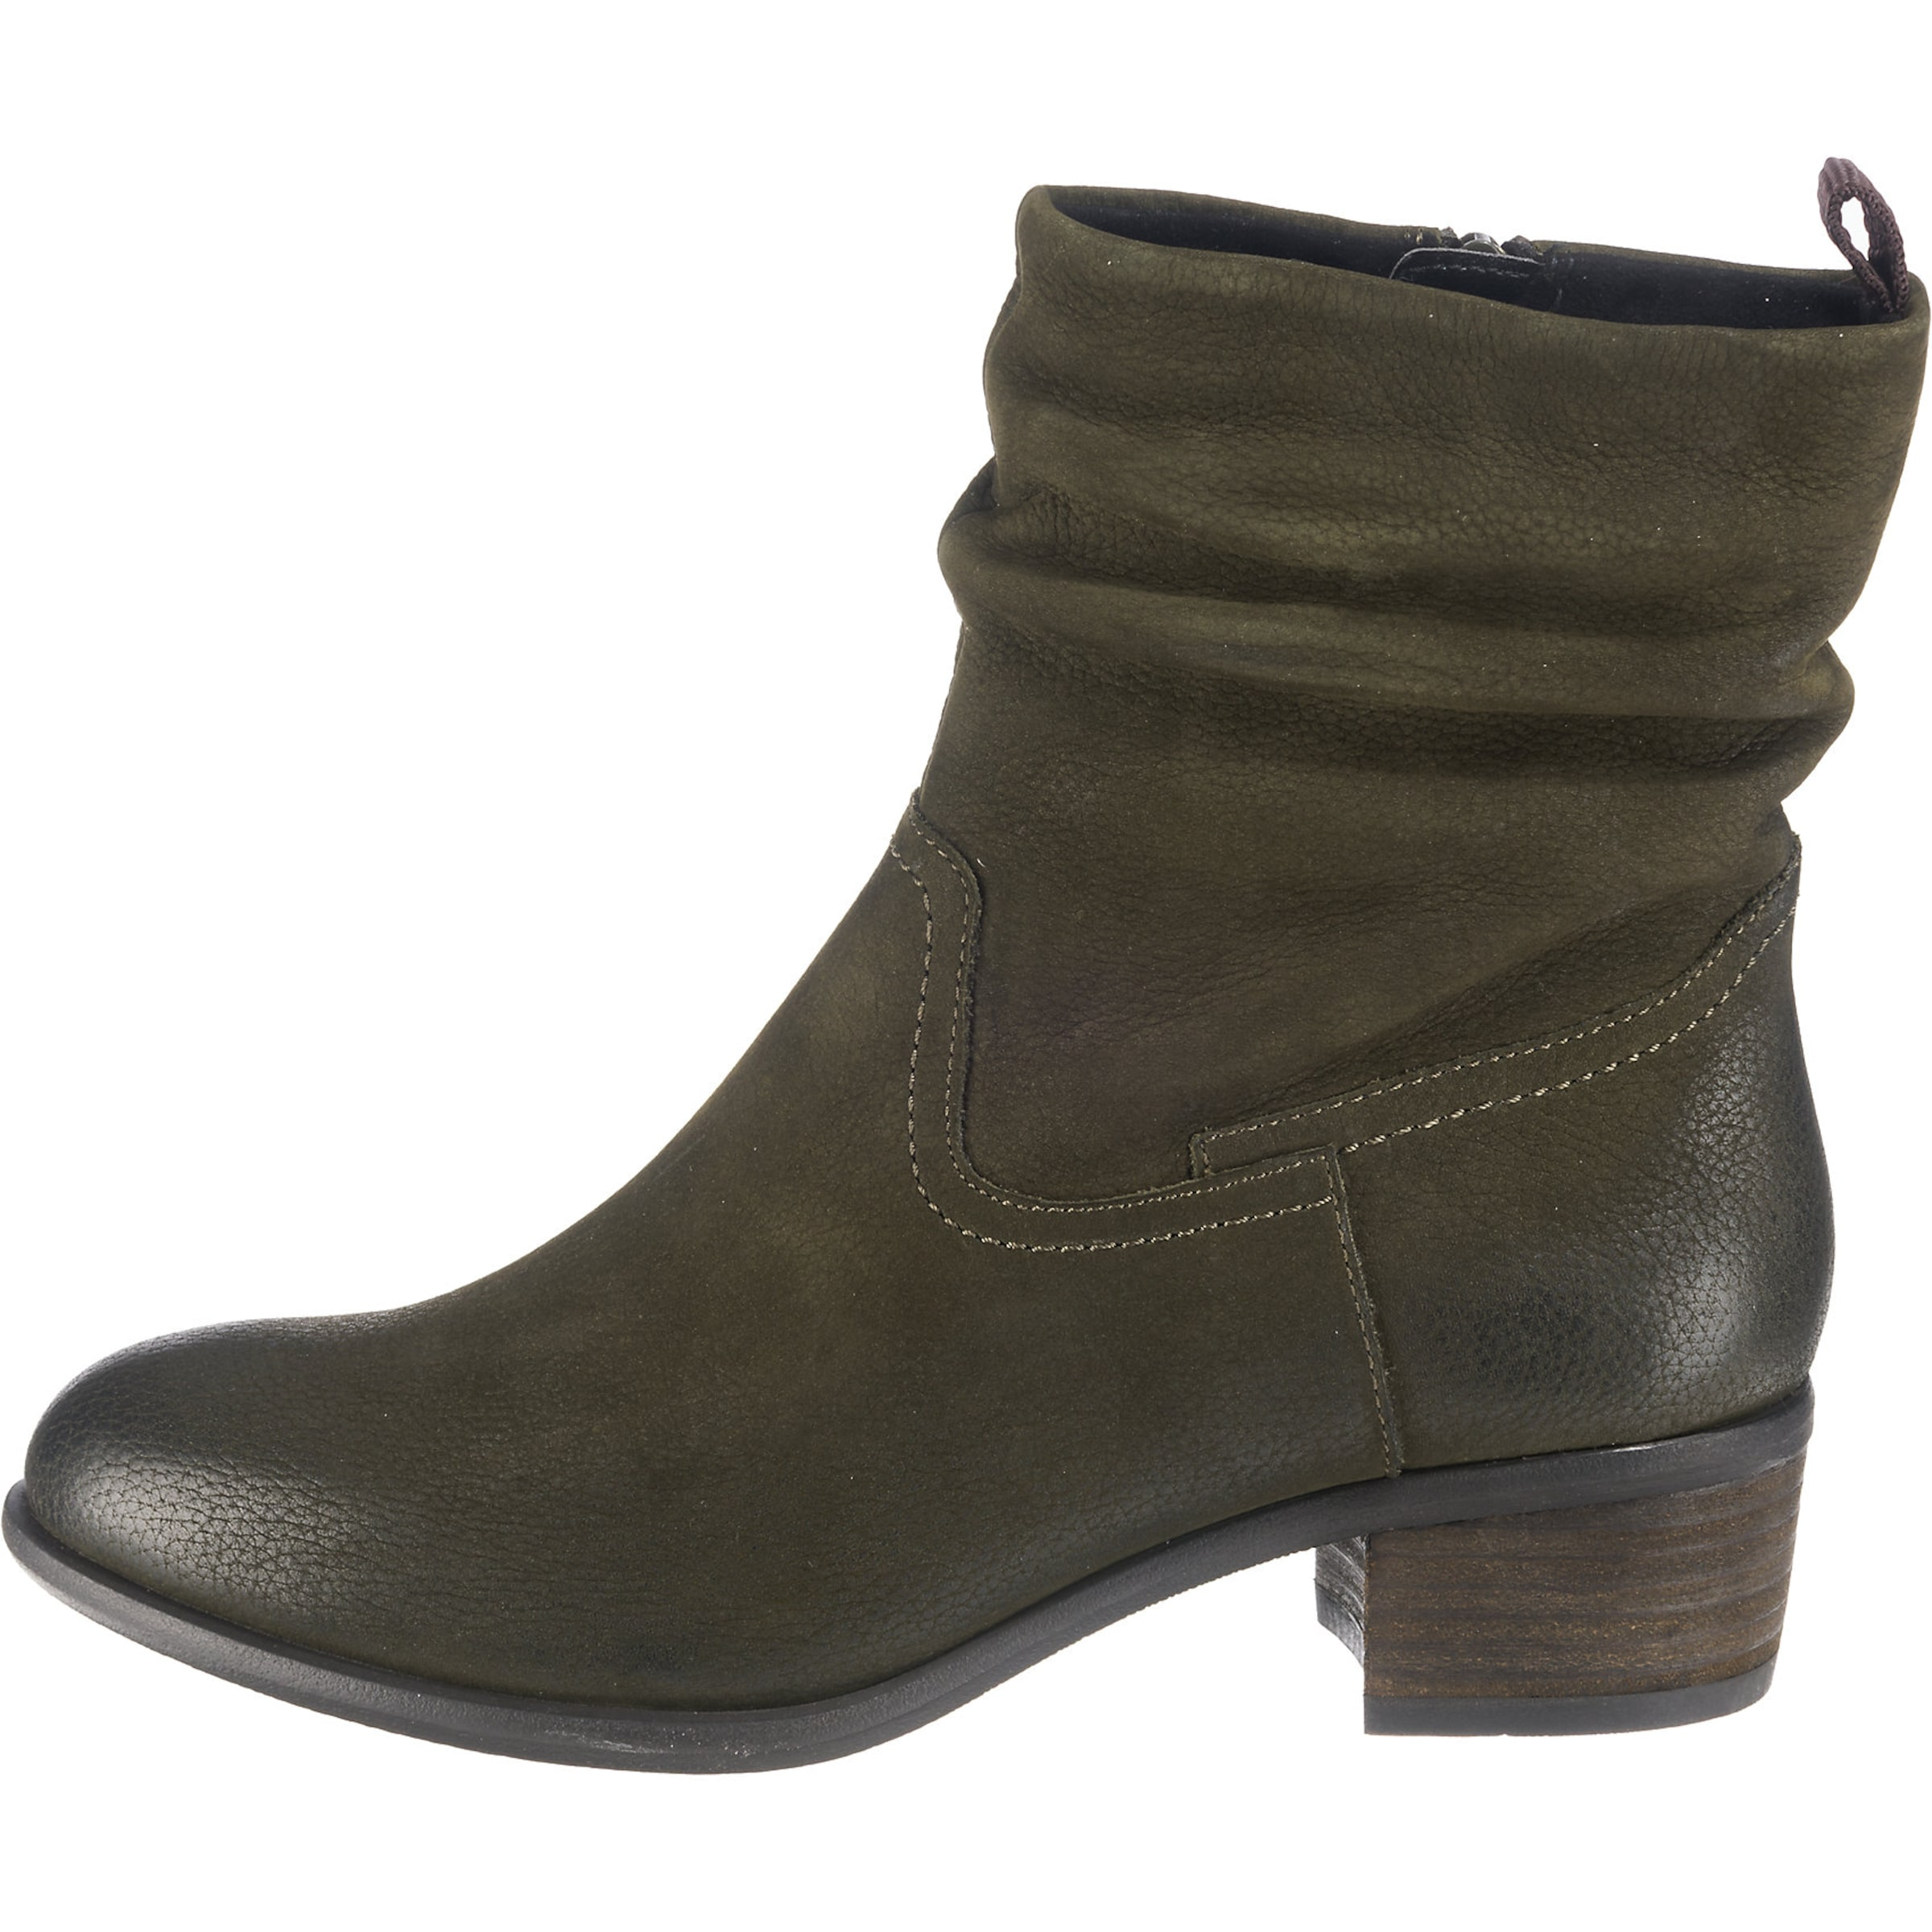 SPM Odette Ankle Boots Discounter Mit Paypal MT2SIzUuD